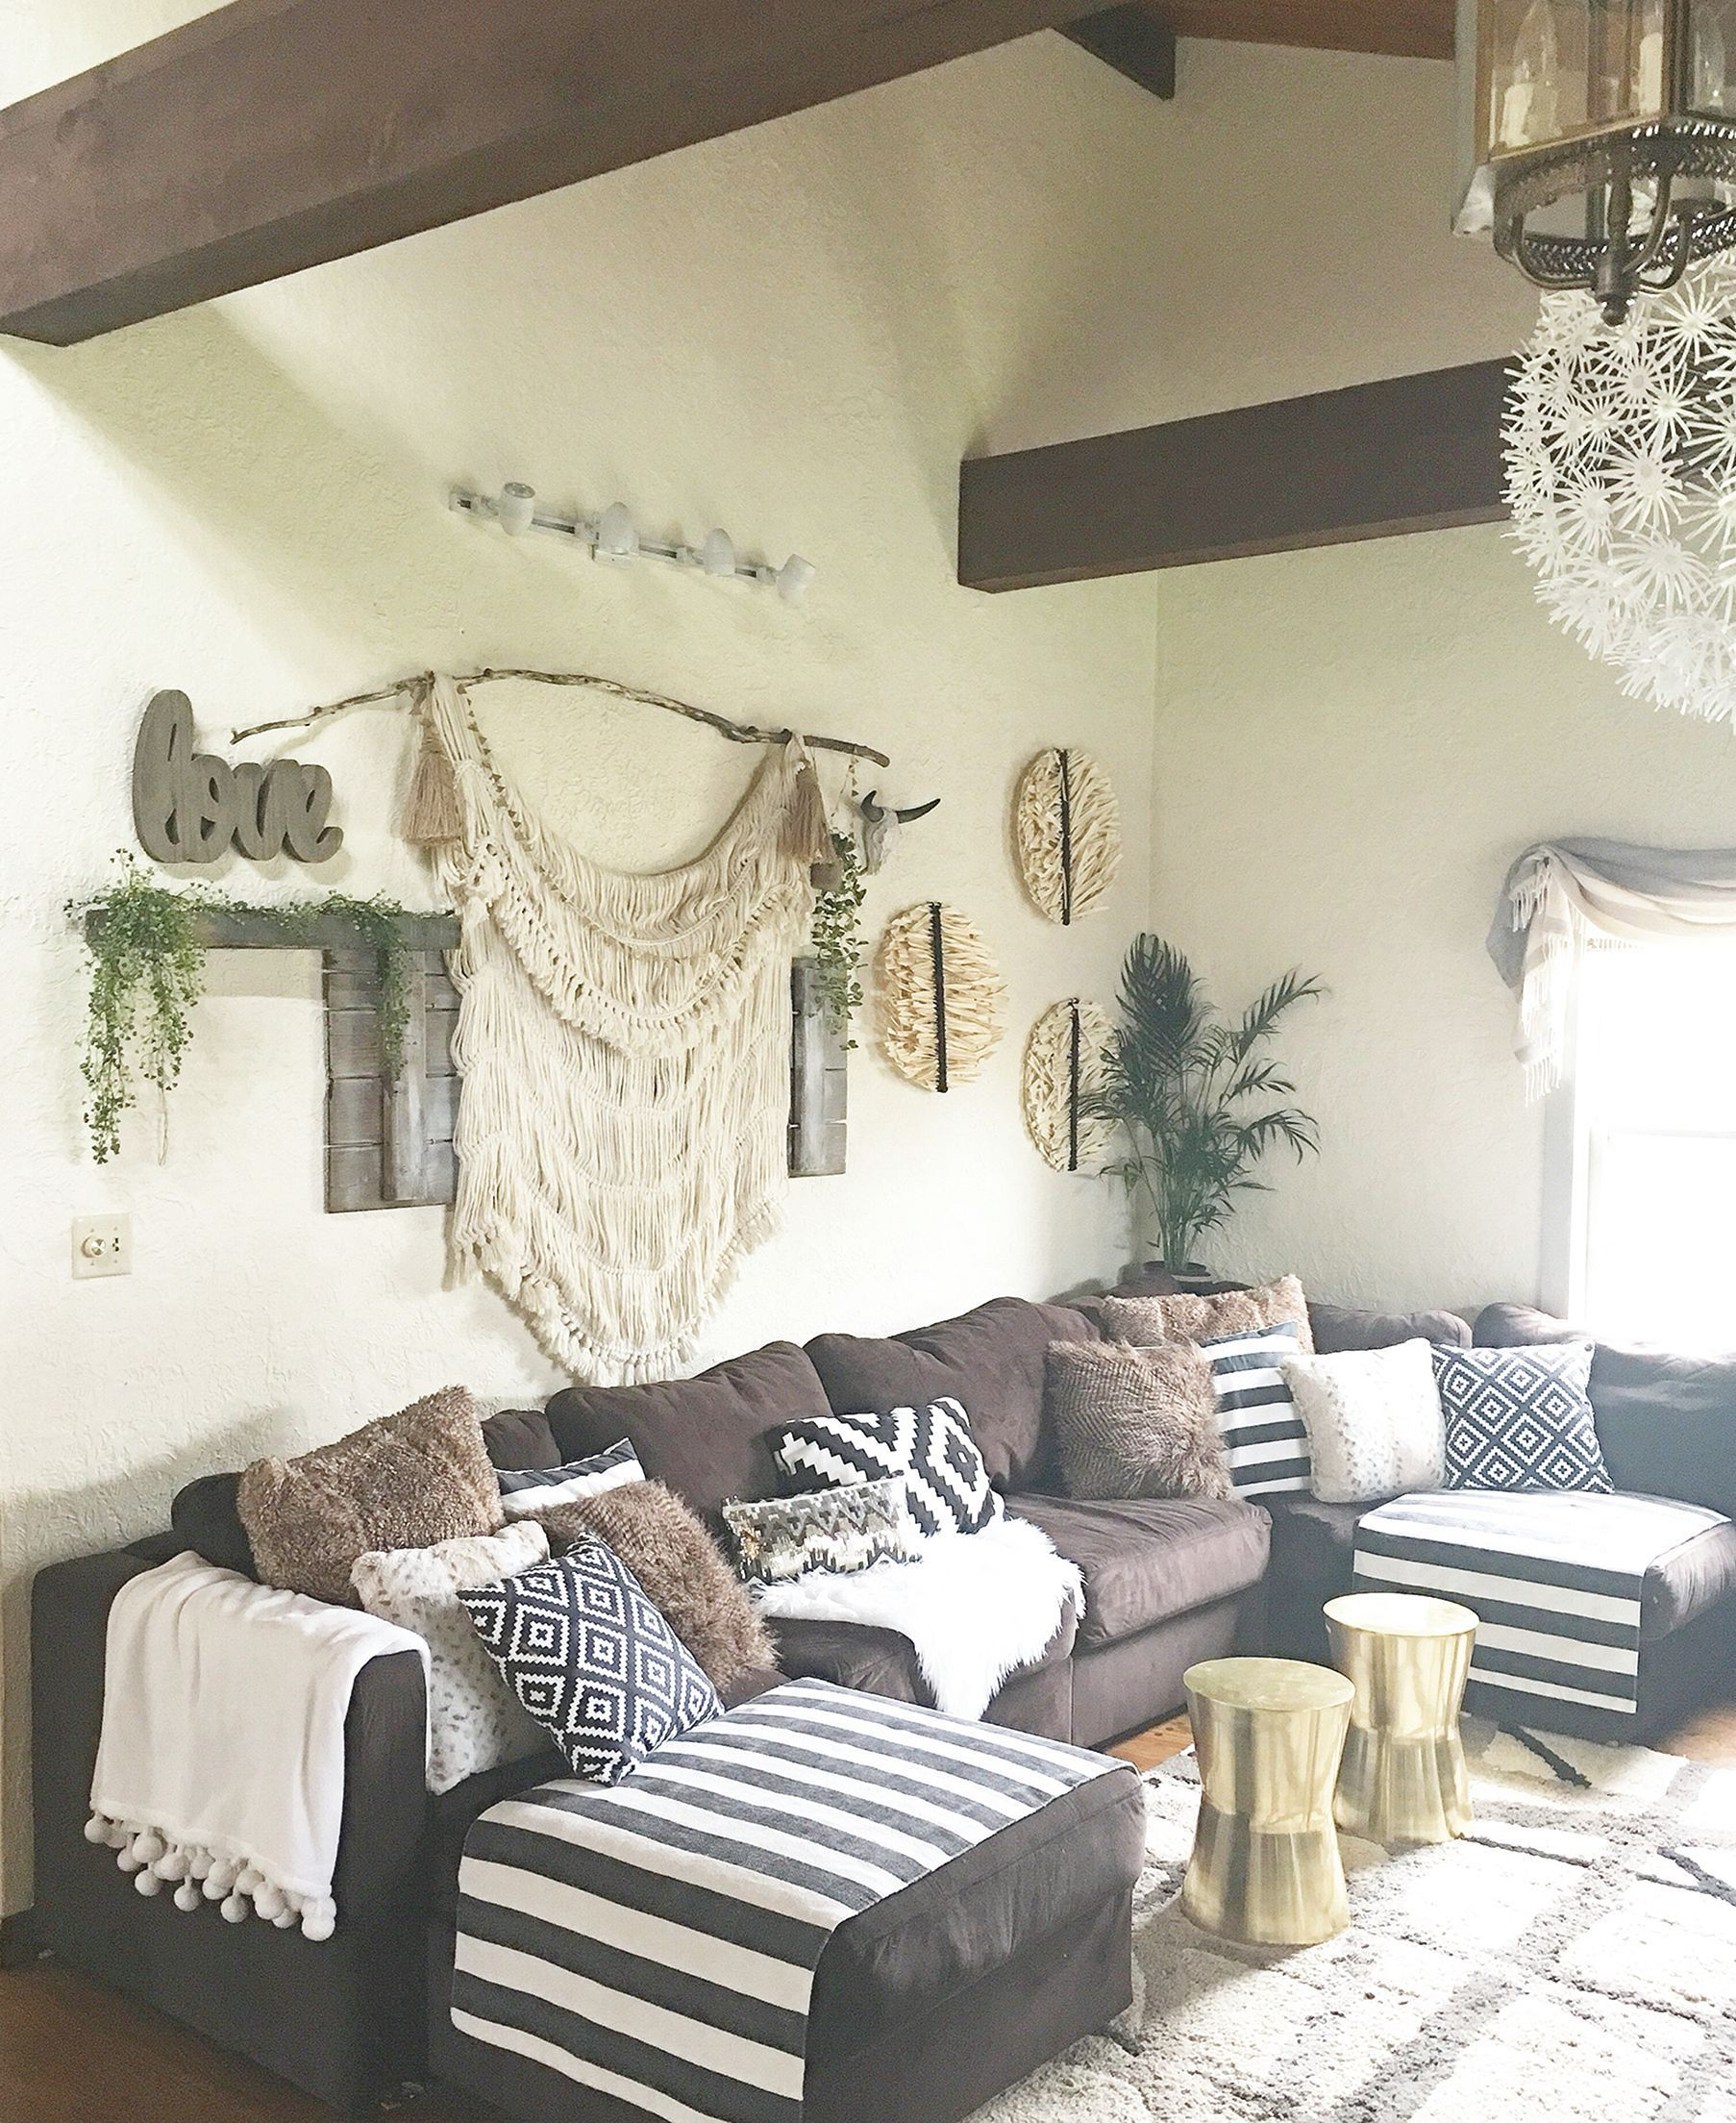 Bohemian Style In A Living Room With A Neutral Color Palette